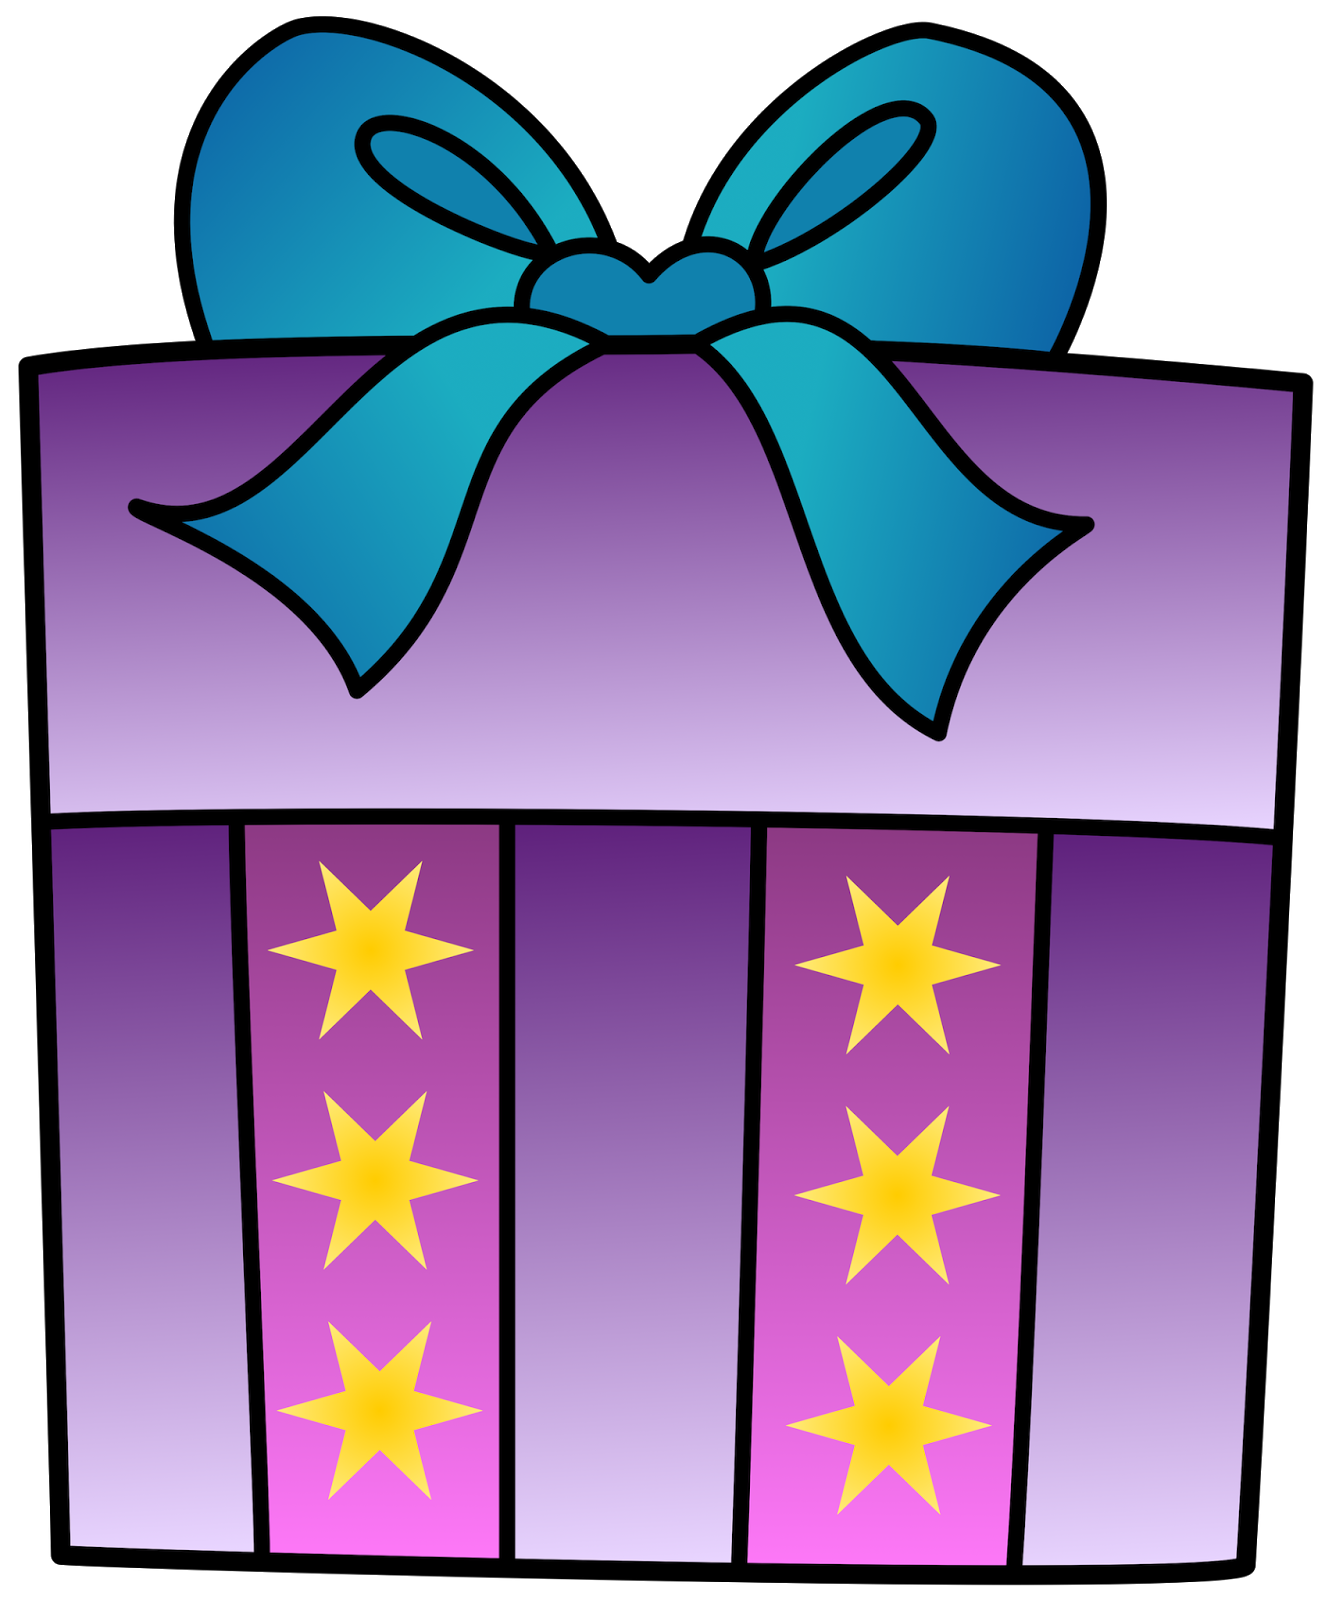 Free gift cliparts download. Gifts clipart birthday present clipart free